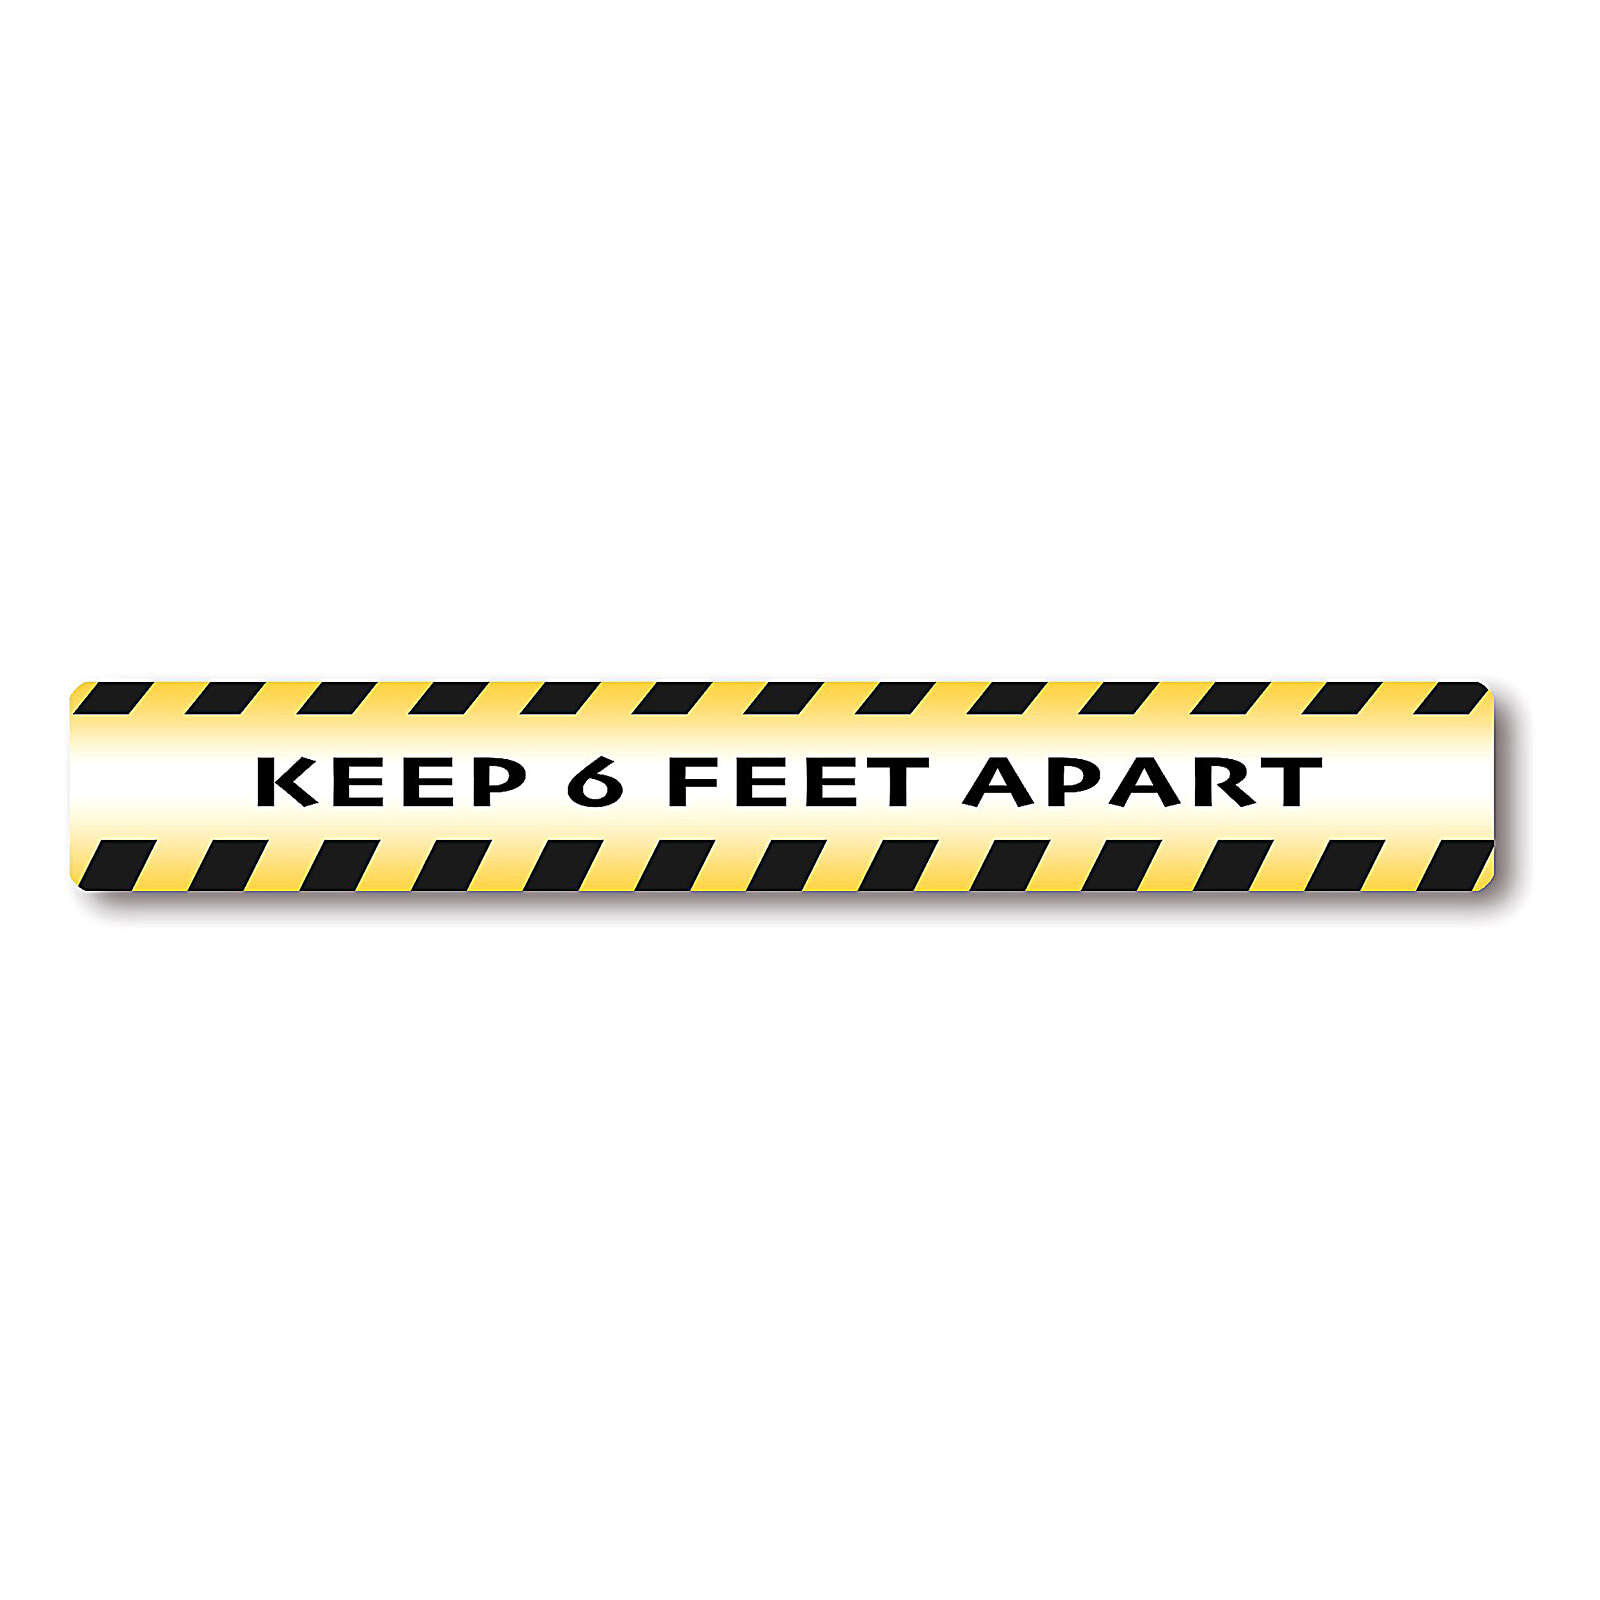 KEEP 6 FEET APART removable stickers 6 pieces 3